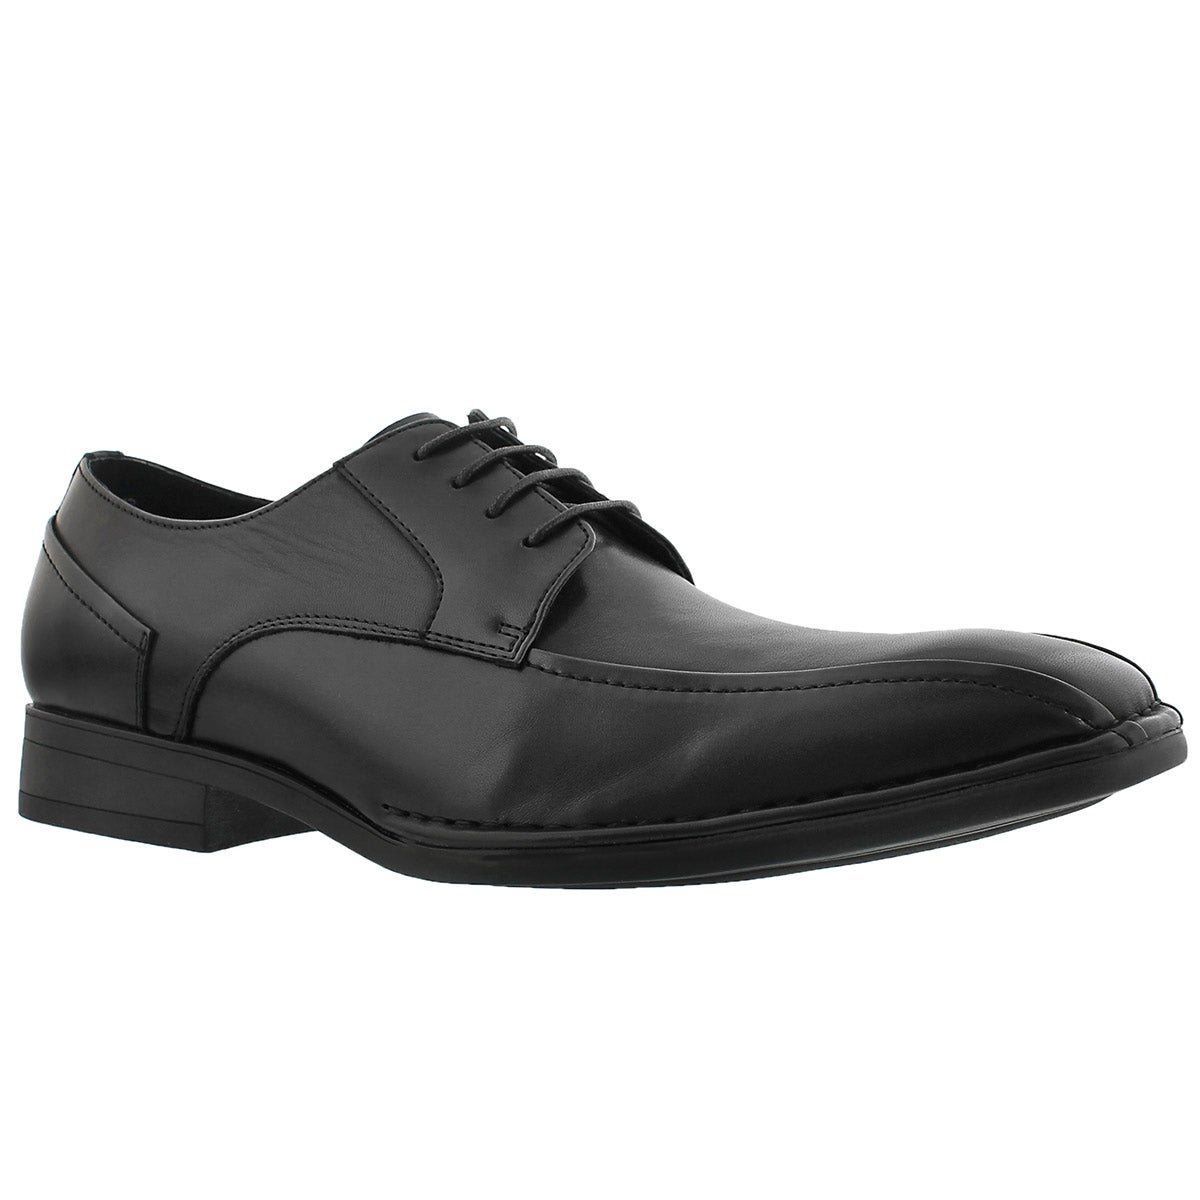 Men's ROMEO black dress oxfords - Wide